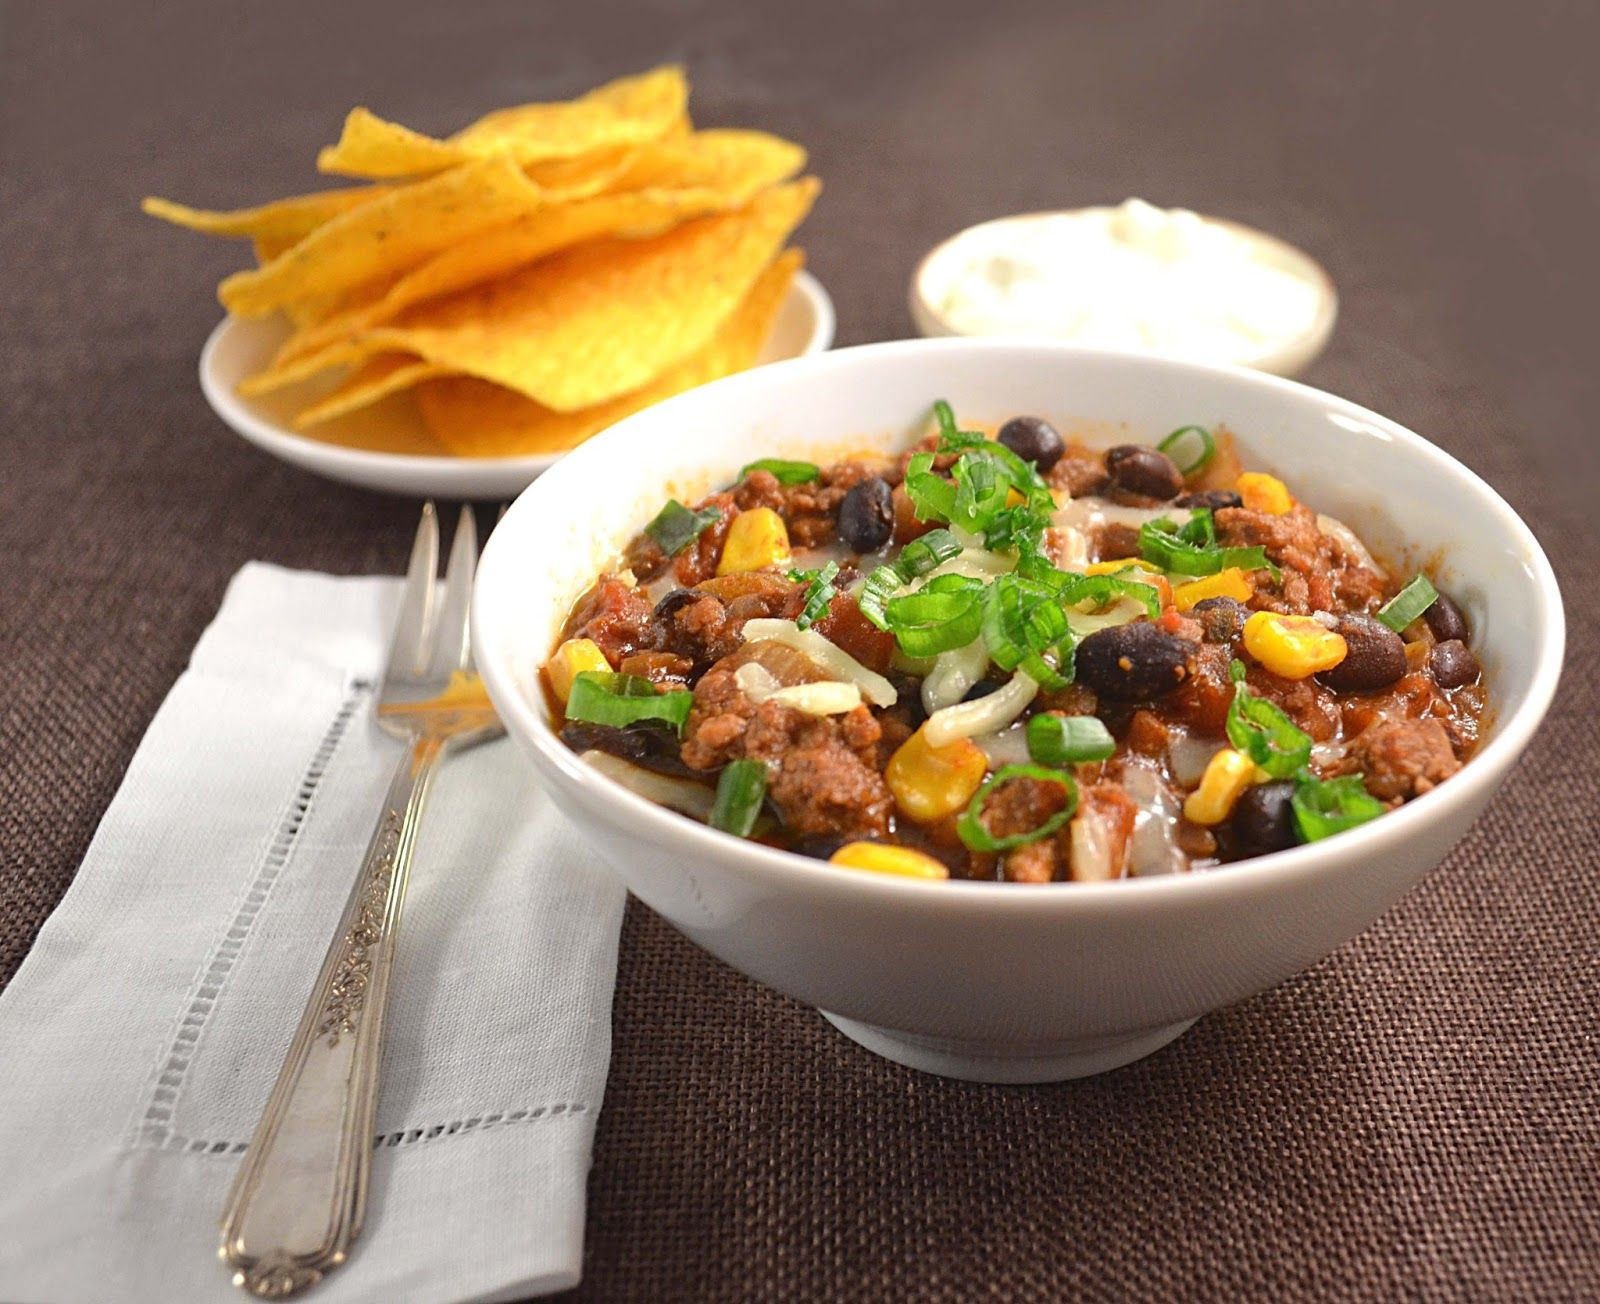 Thick & Hearty Diner-Style Chili